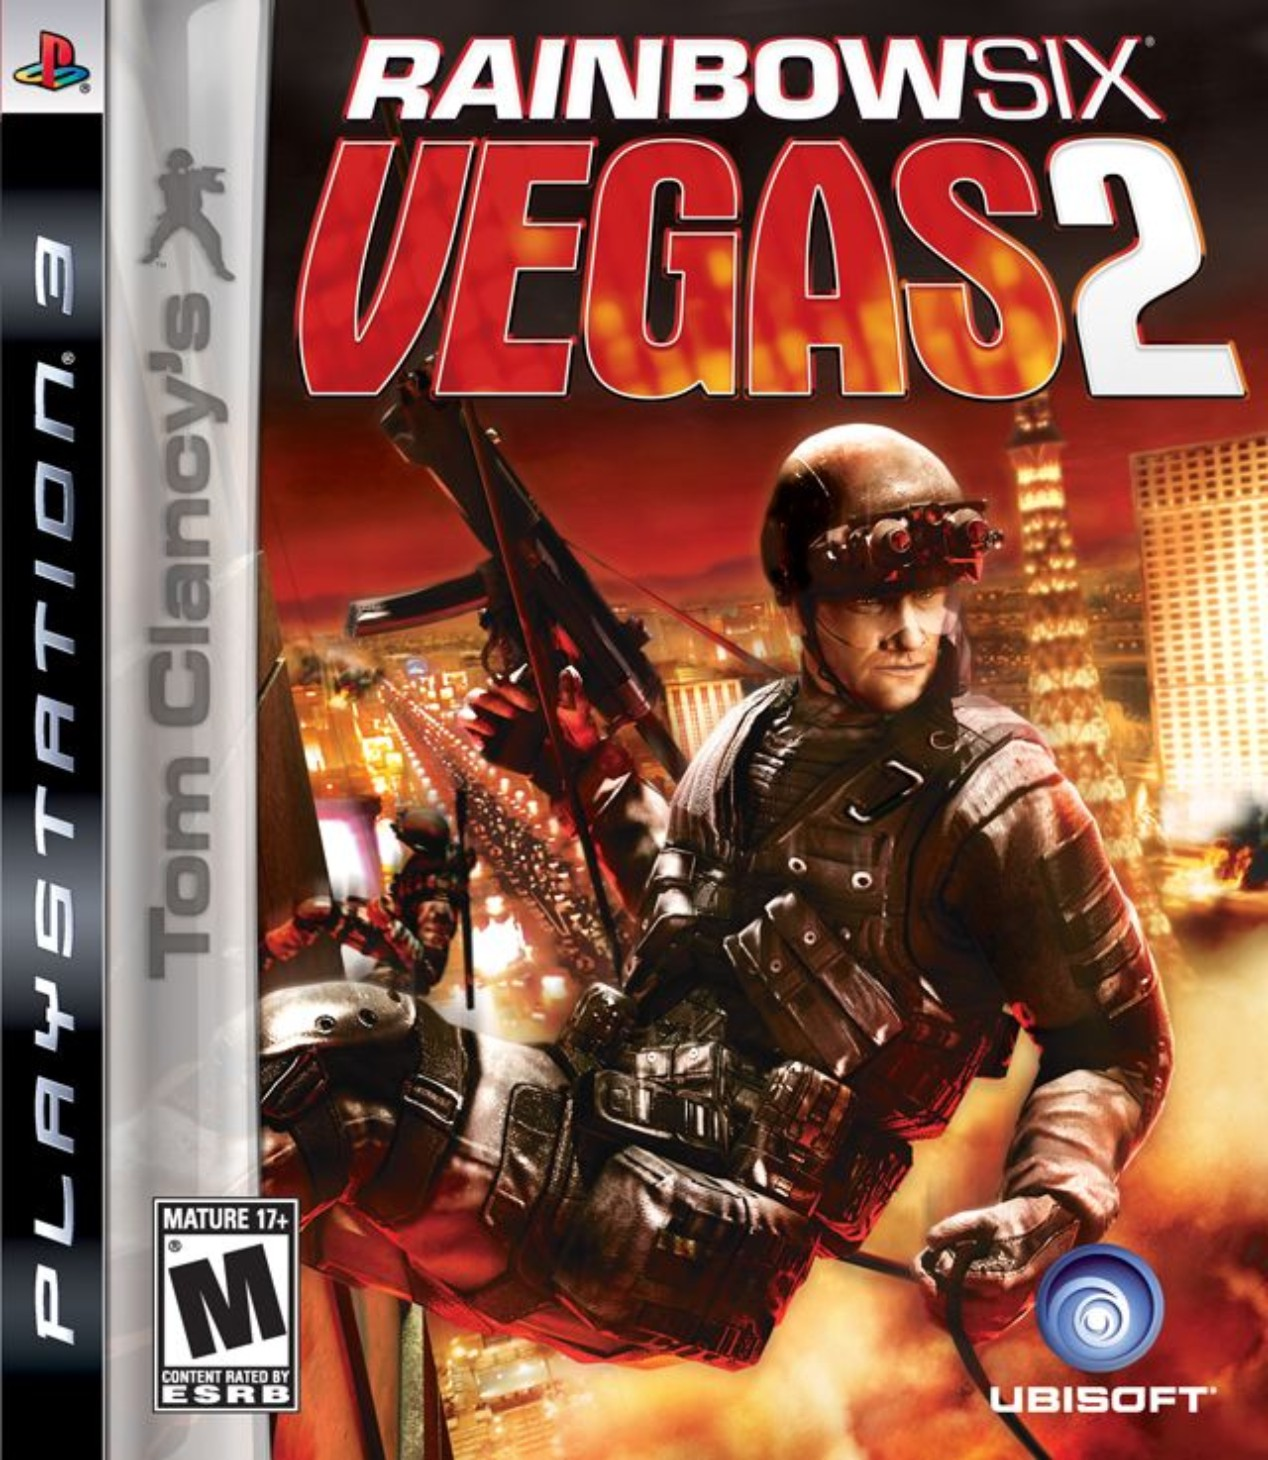 an examination of tom clancys rainbow six Tom clancy's rainbow six is a media franchise created by american author tom  clancy about a fictional international counter-terrorist unit called rainbow.